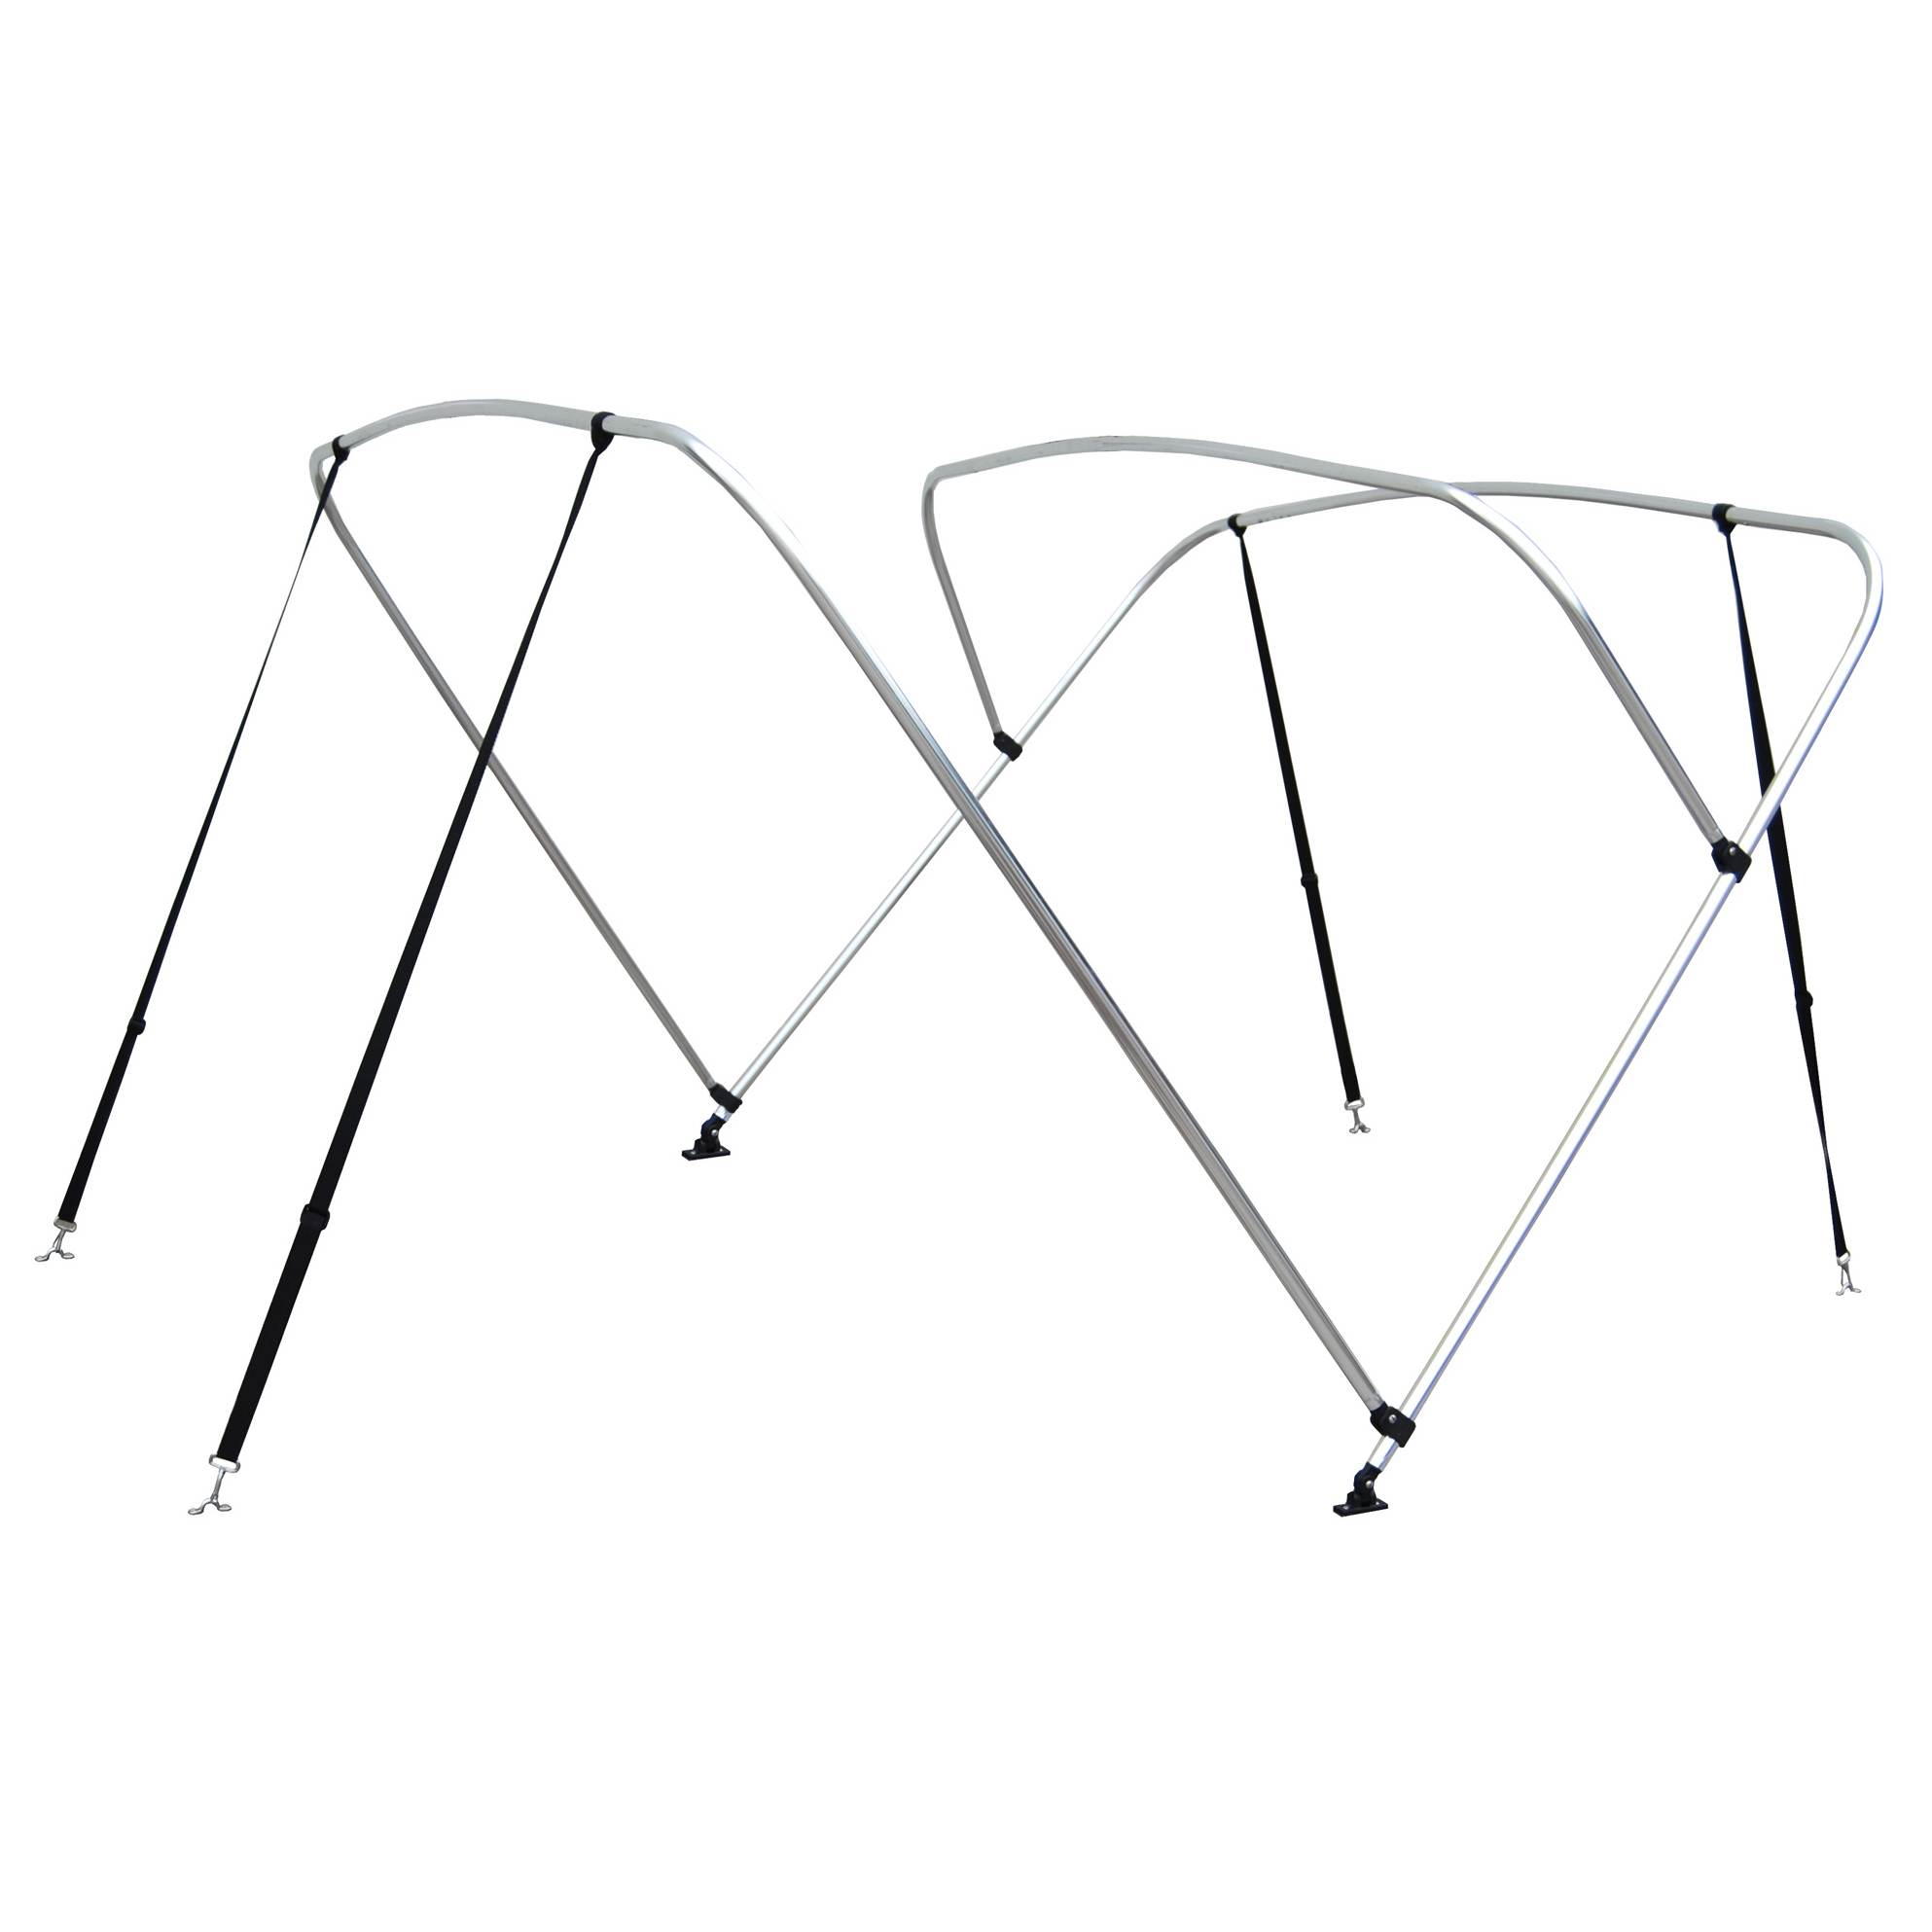 Shademate White Vinyl Stainless 4-Bow Bimini Top 8'L x 54''H 67''-72'' Wide